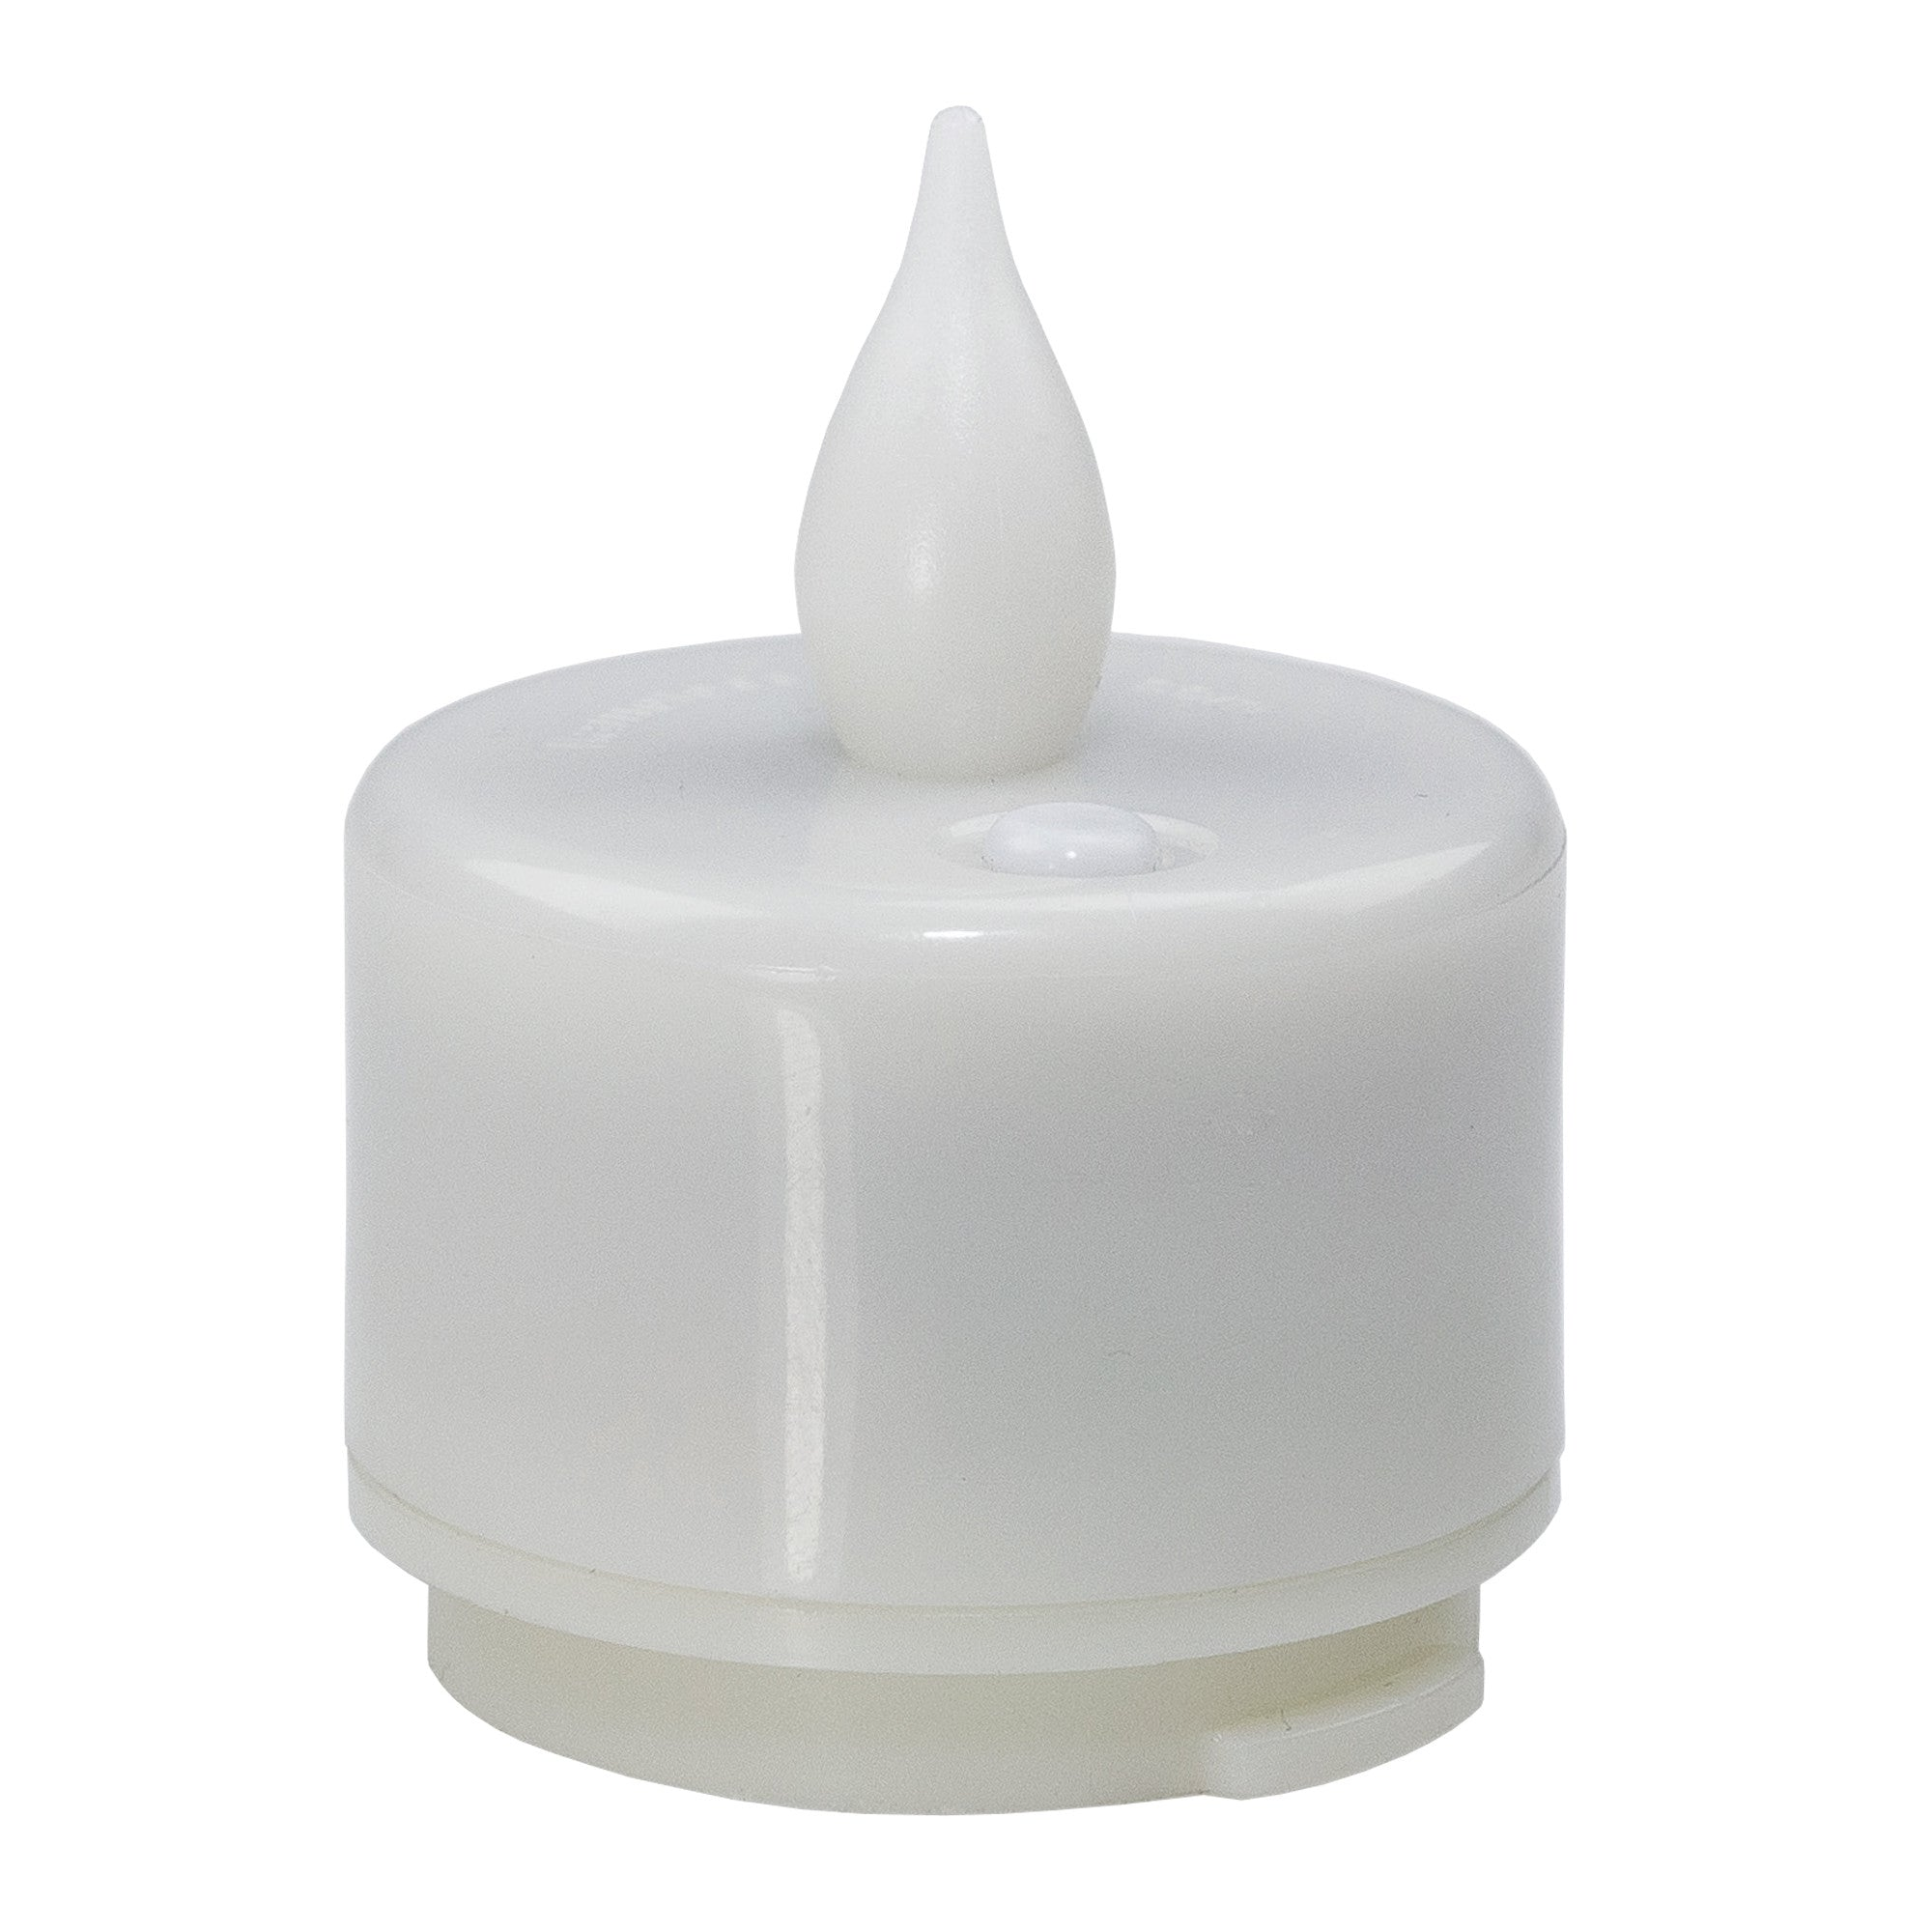 LUX Series Rechargeable Candles